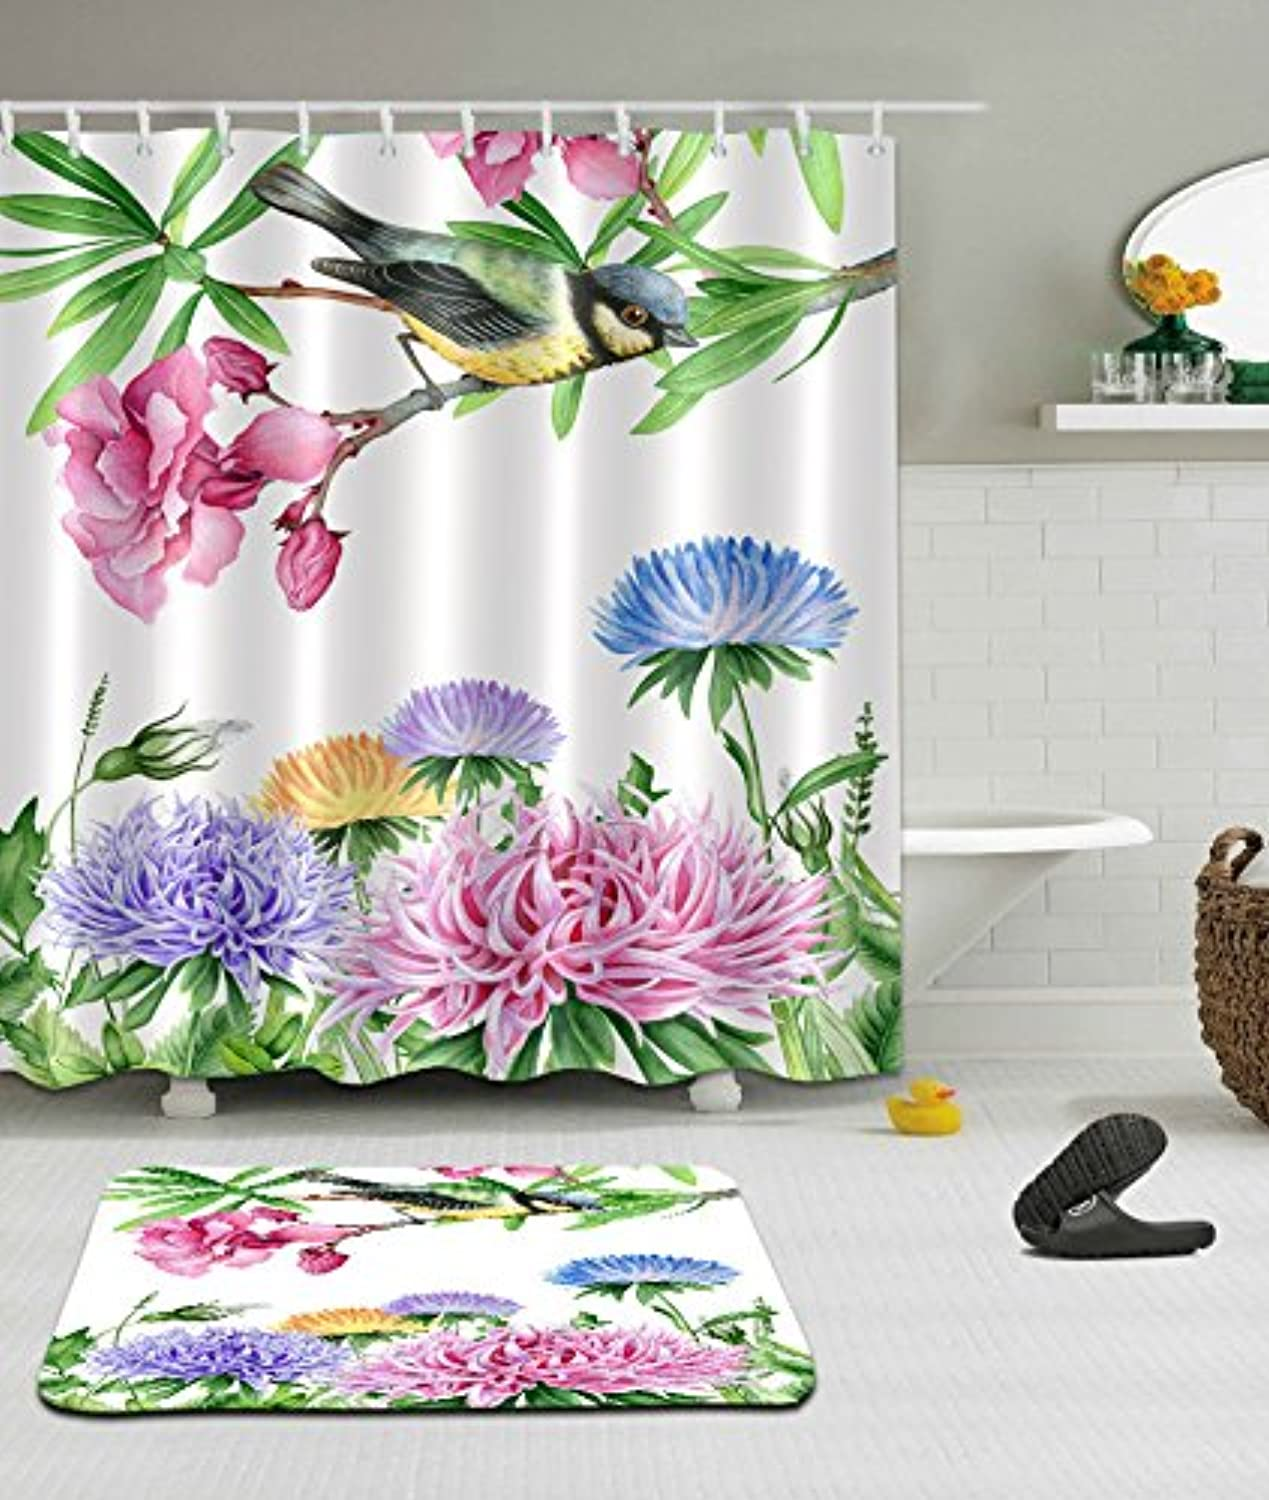 tienda de bajo costo Bath Curtain Rich Rich Rich and Expensive Flower and Bird 3D Personality  garantía de crédito